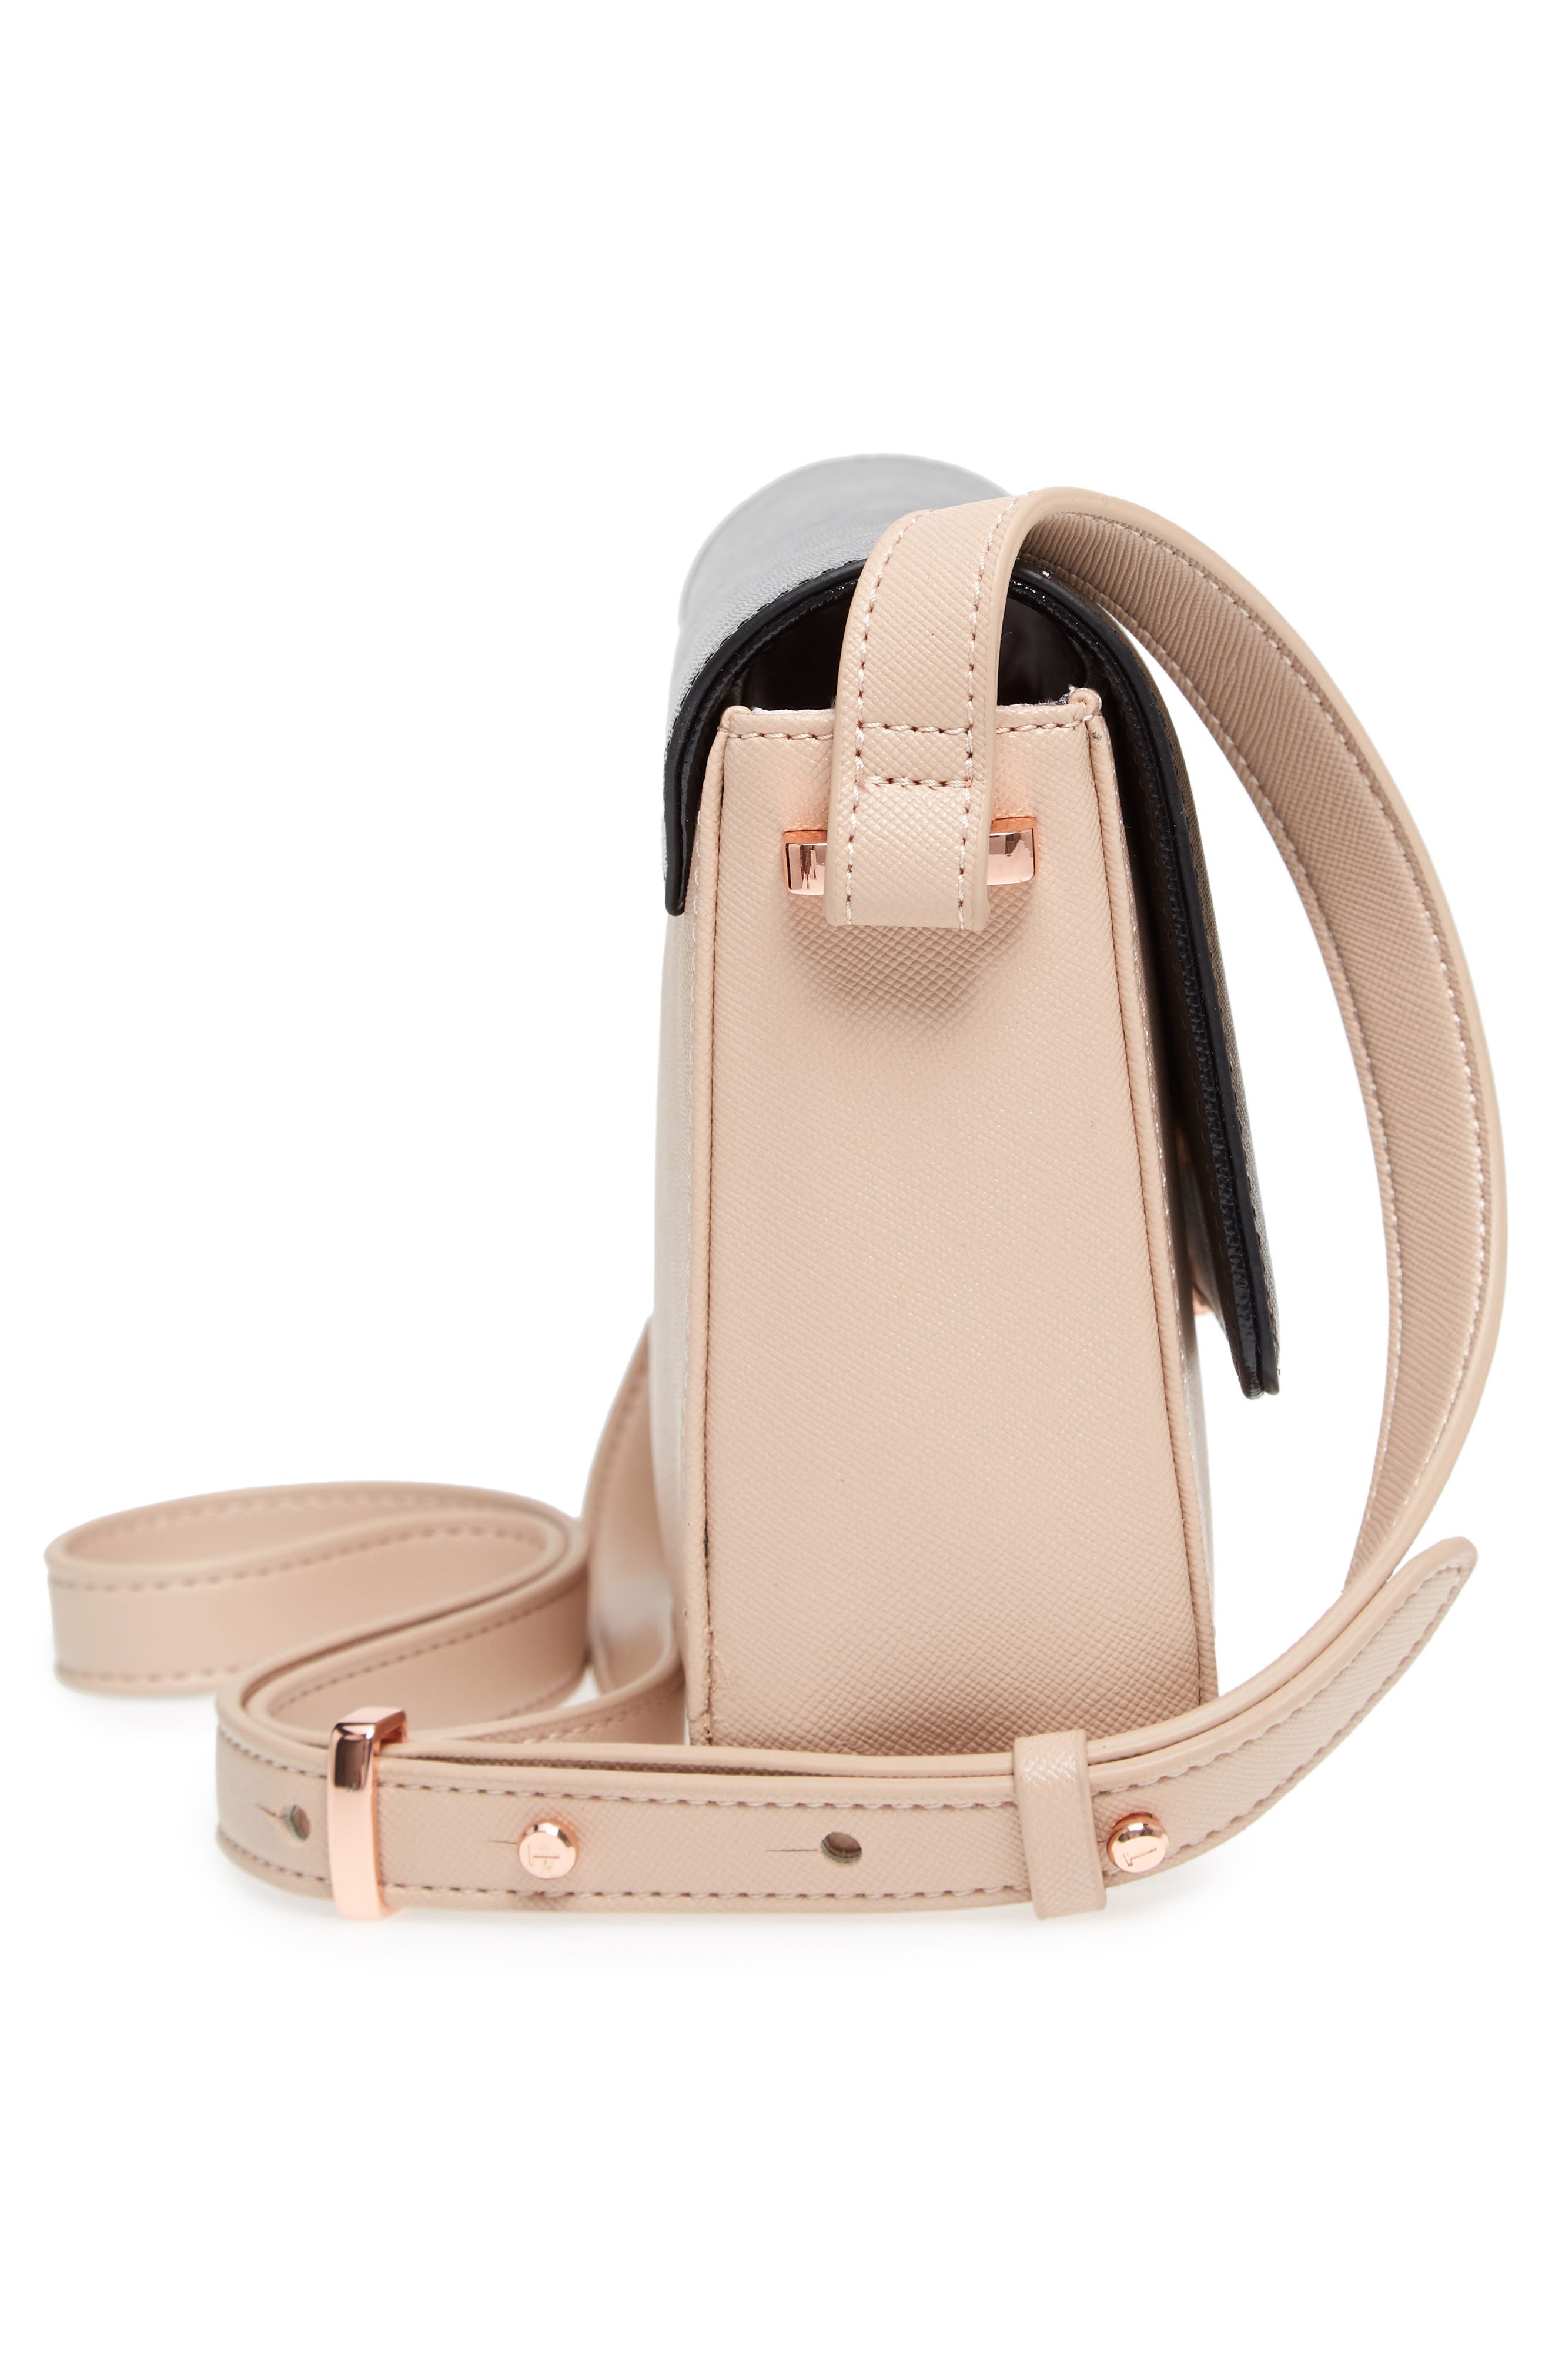 Demonda Faux Leather Crossbody Bag,                             Alternate thumbnail 10, color,